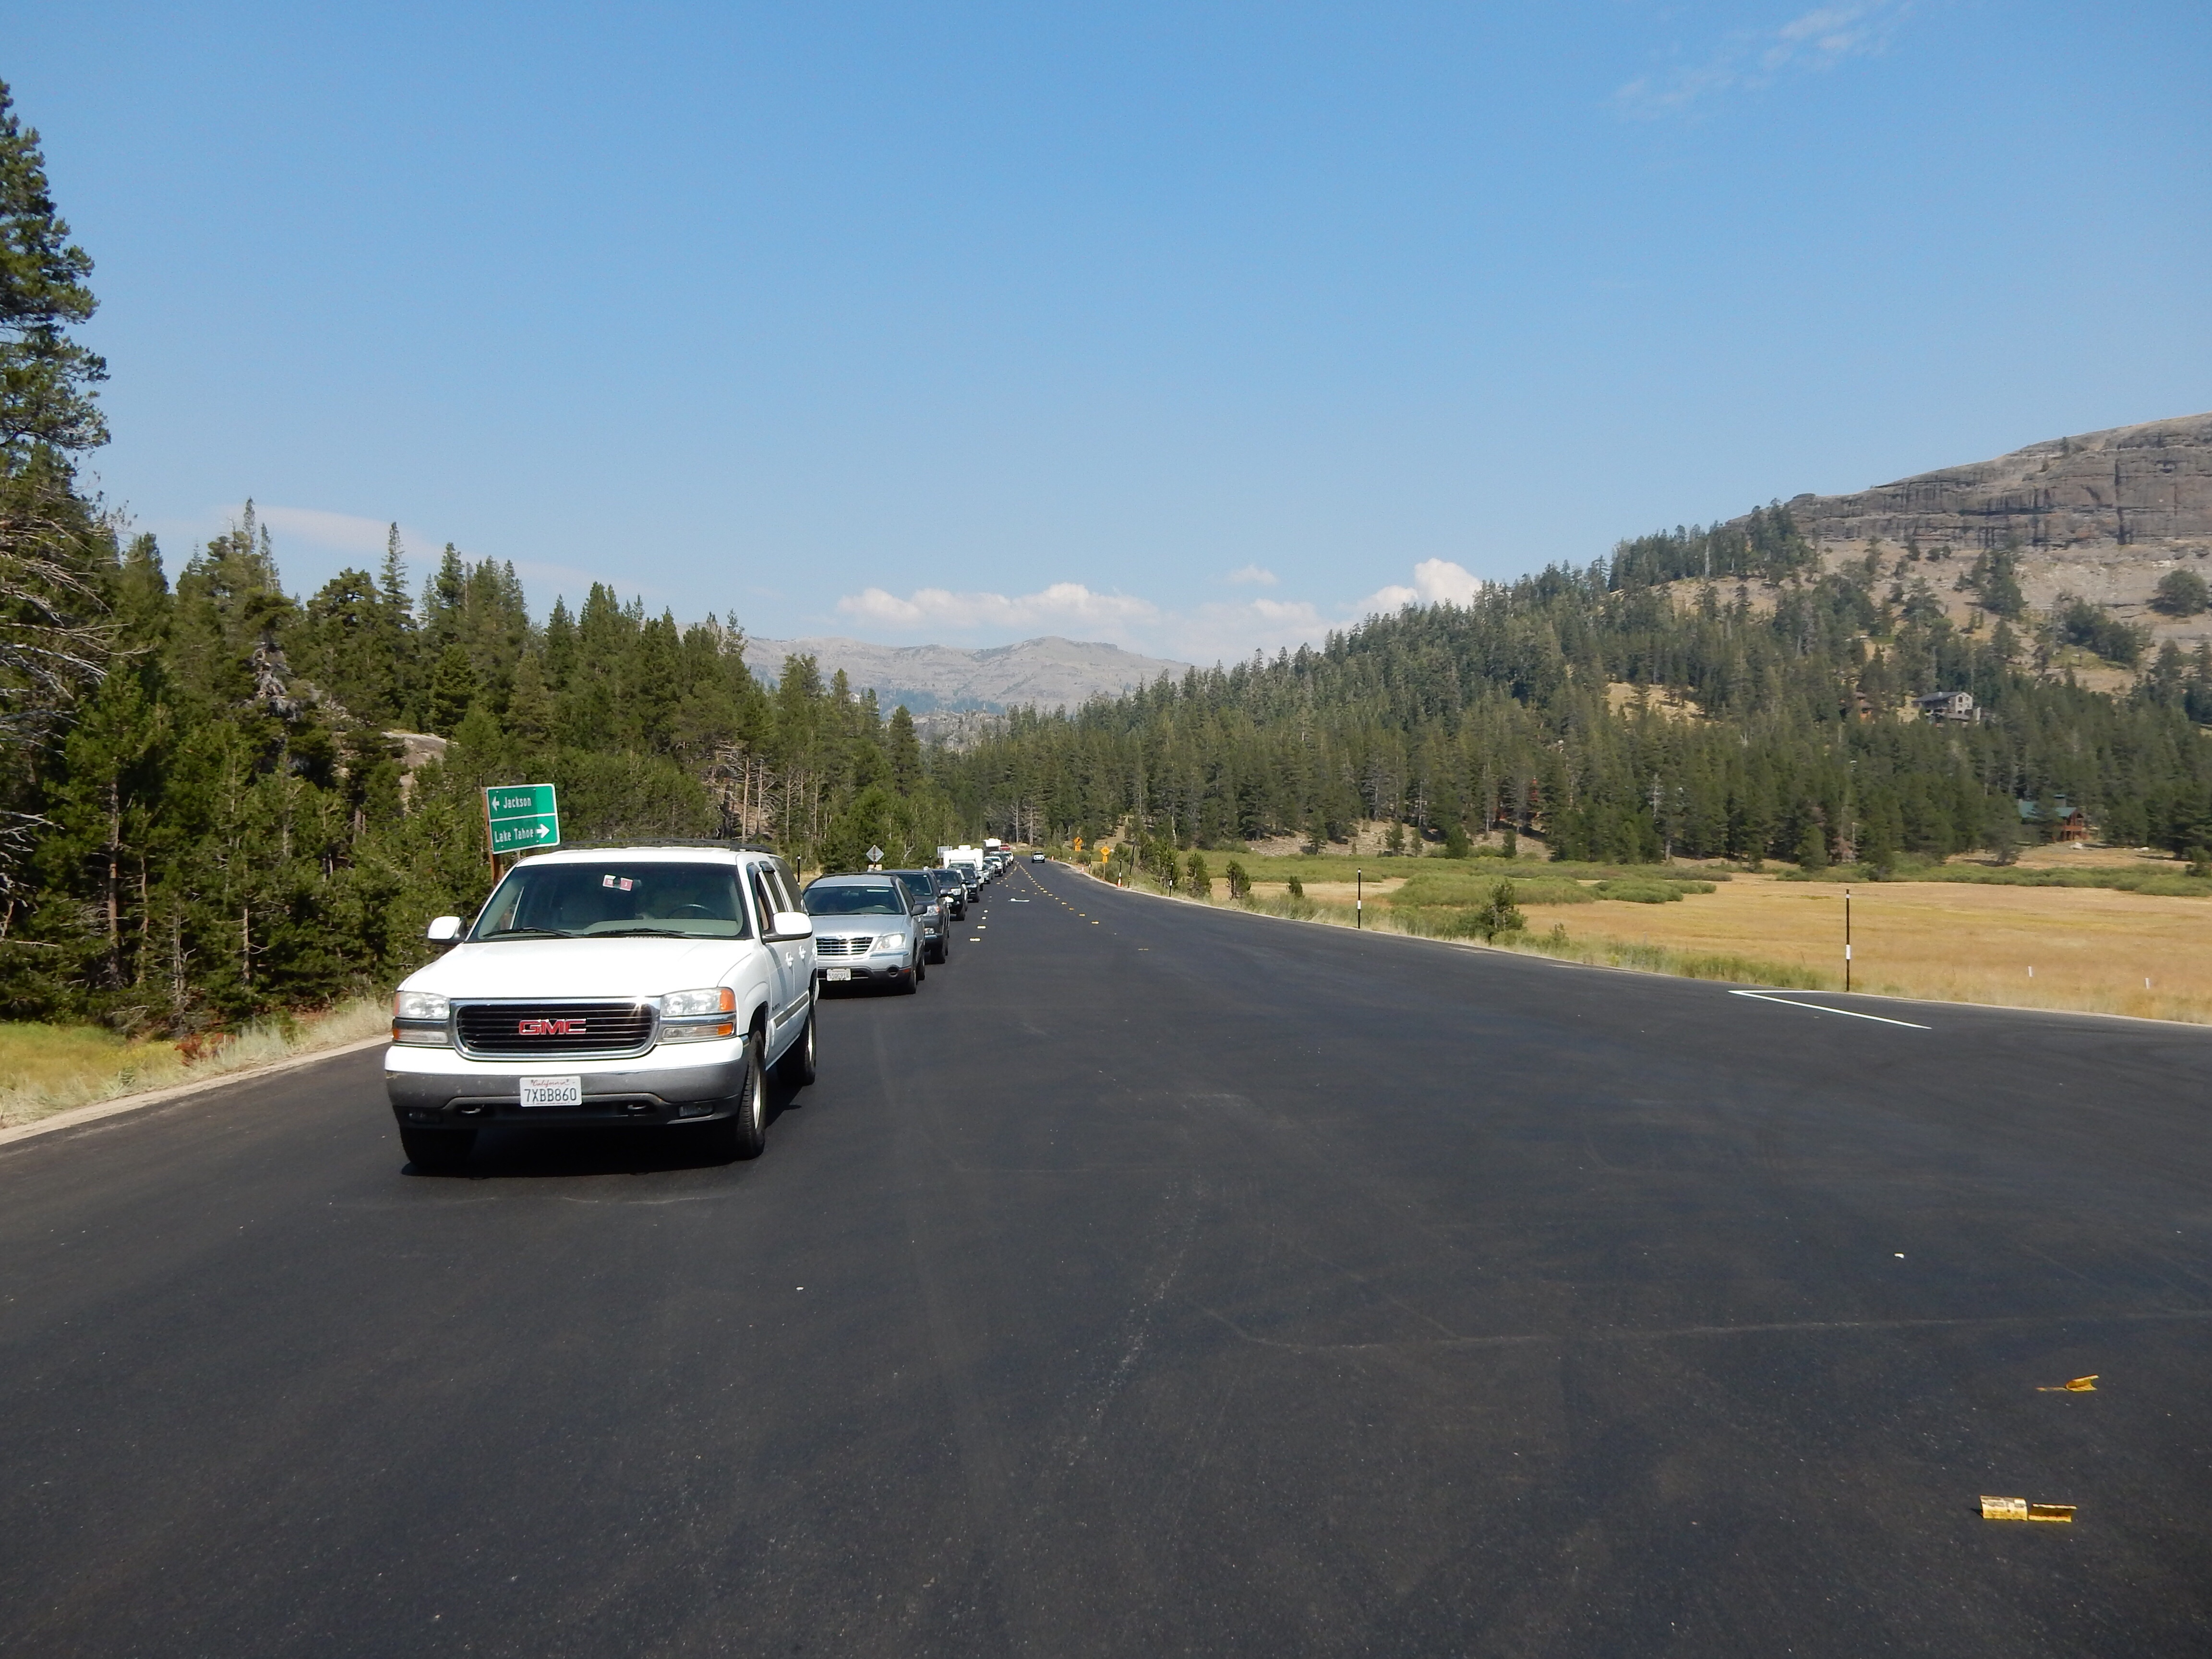 Waiting for a pilot car to guide us through an area of single-lane traffic on CA88 near Carson Pass.